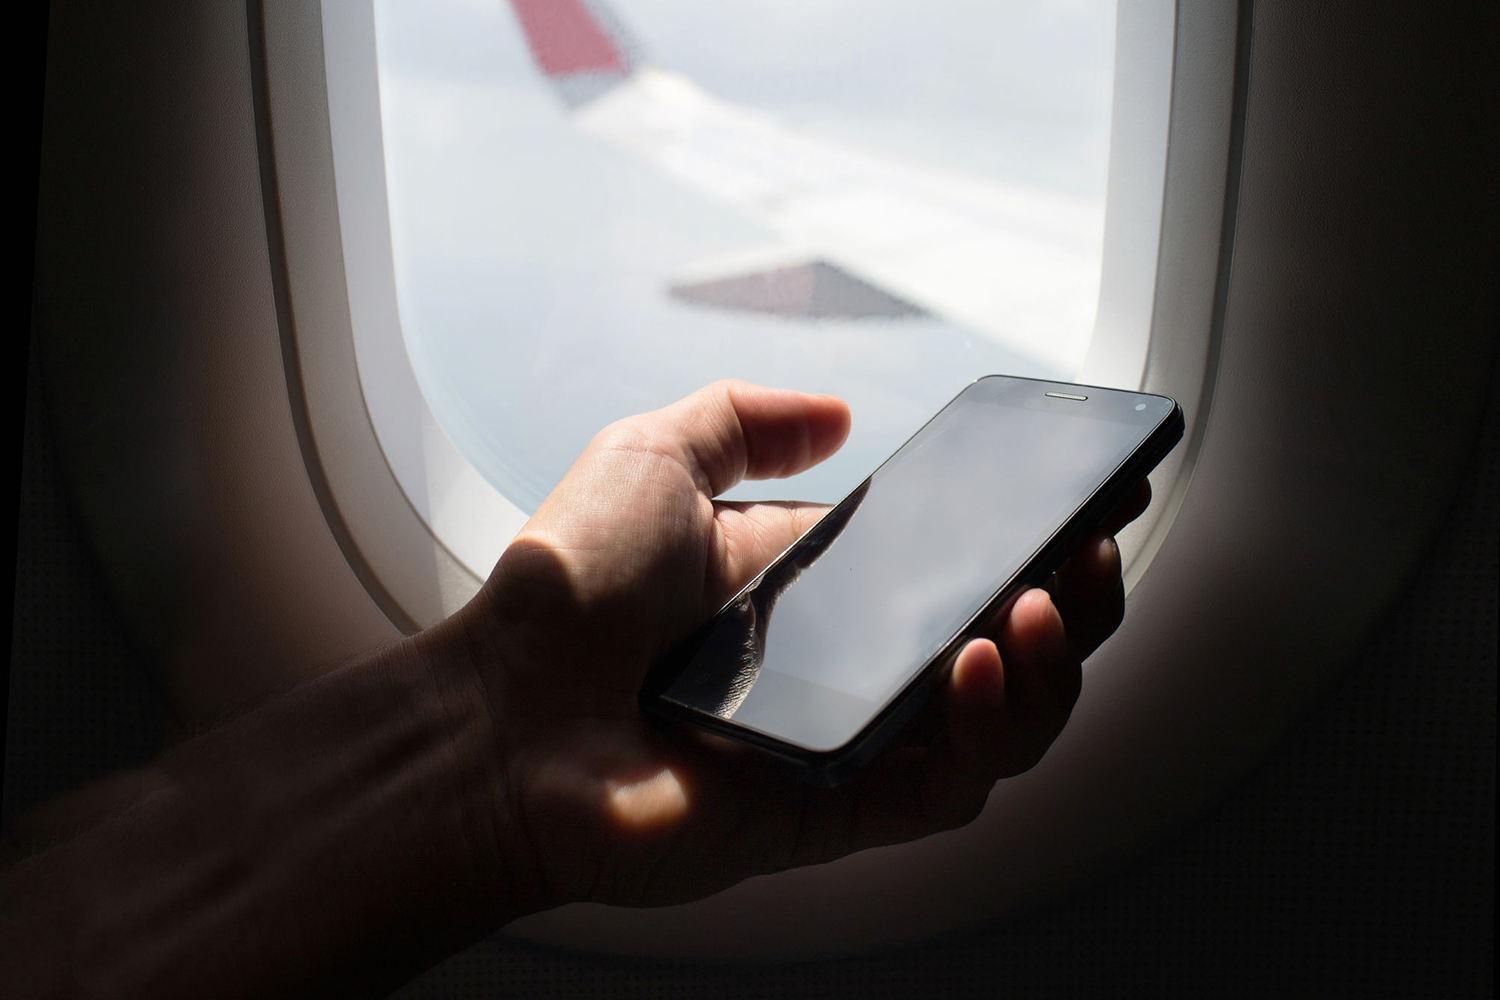 How To Turn On Airplane Mode On An Iphone Or Android